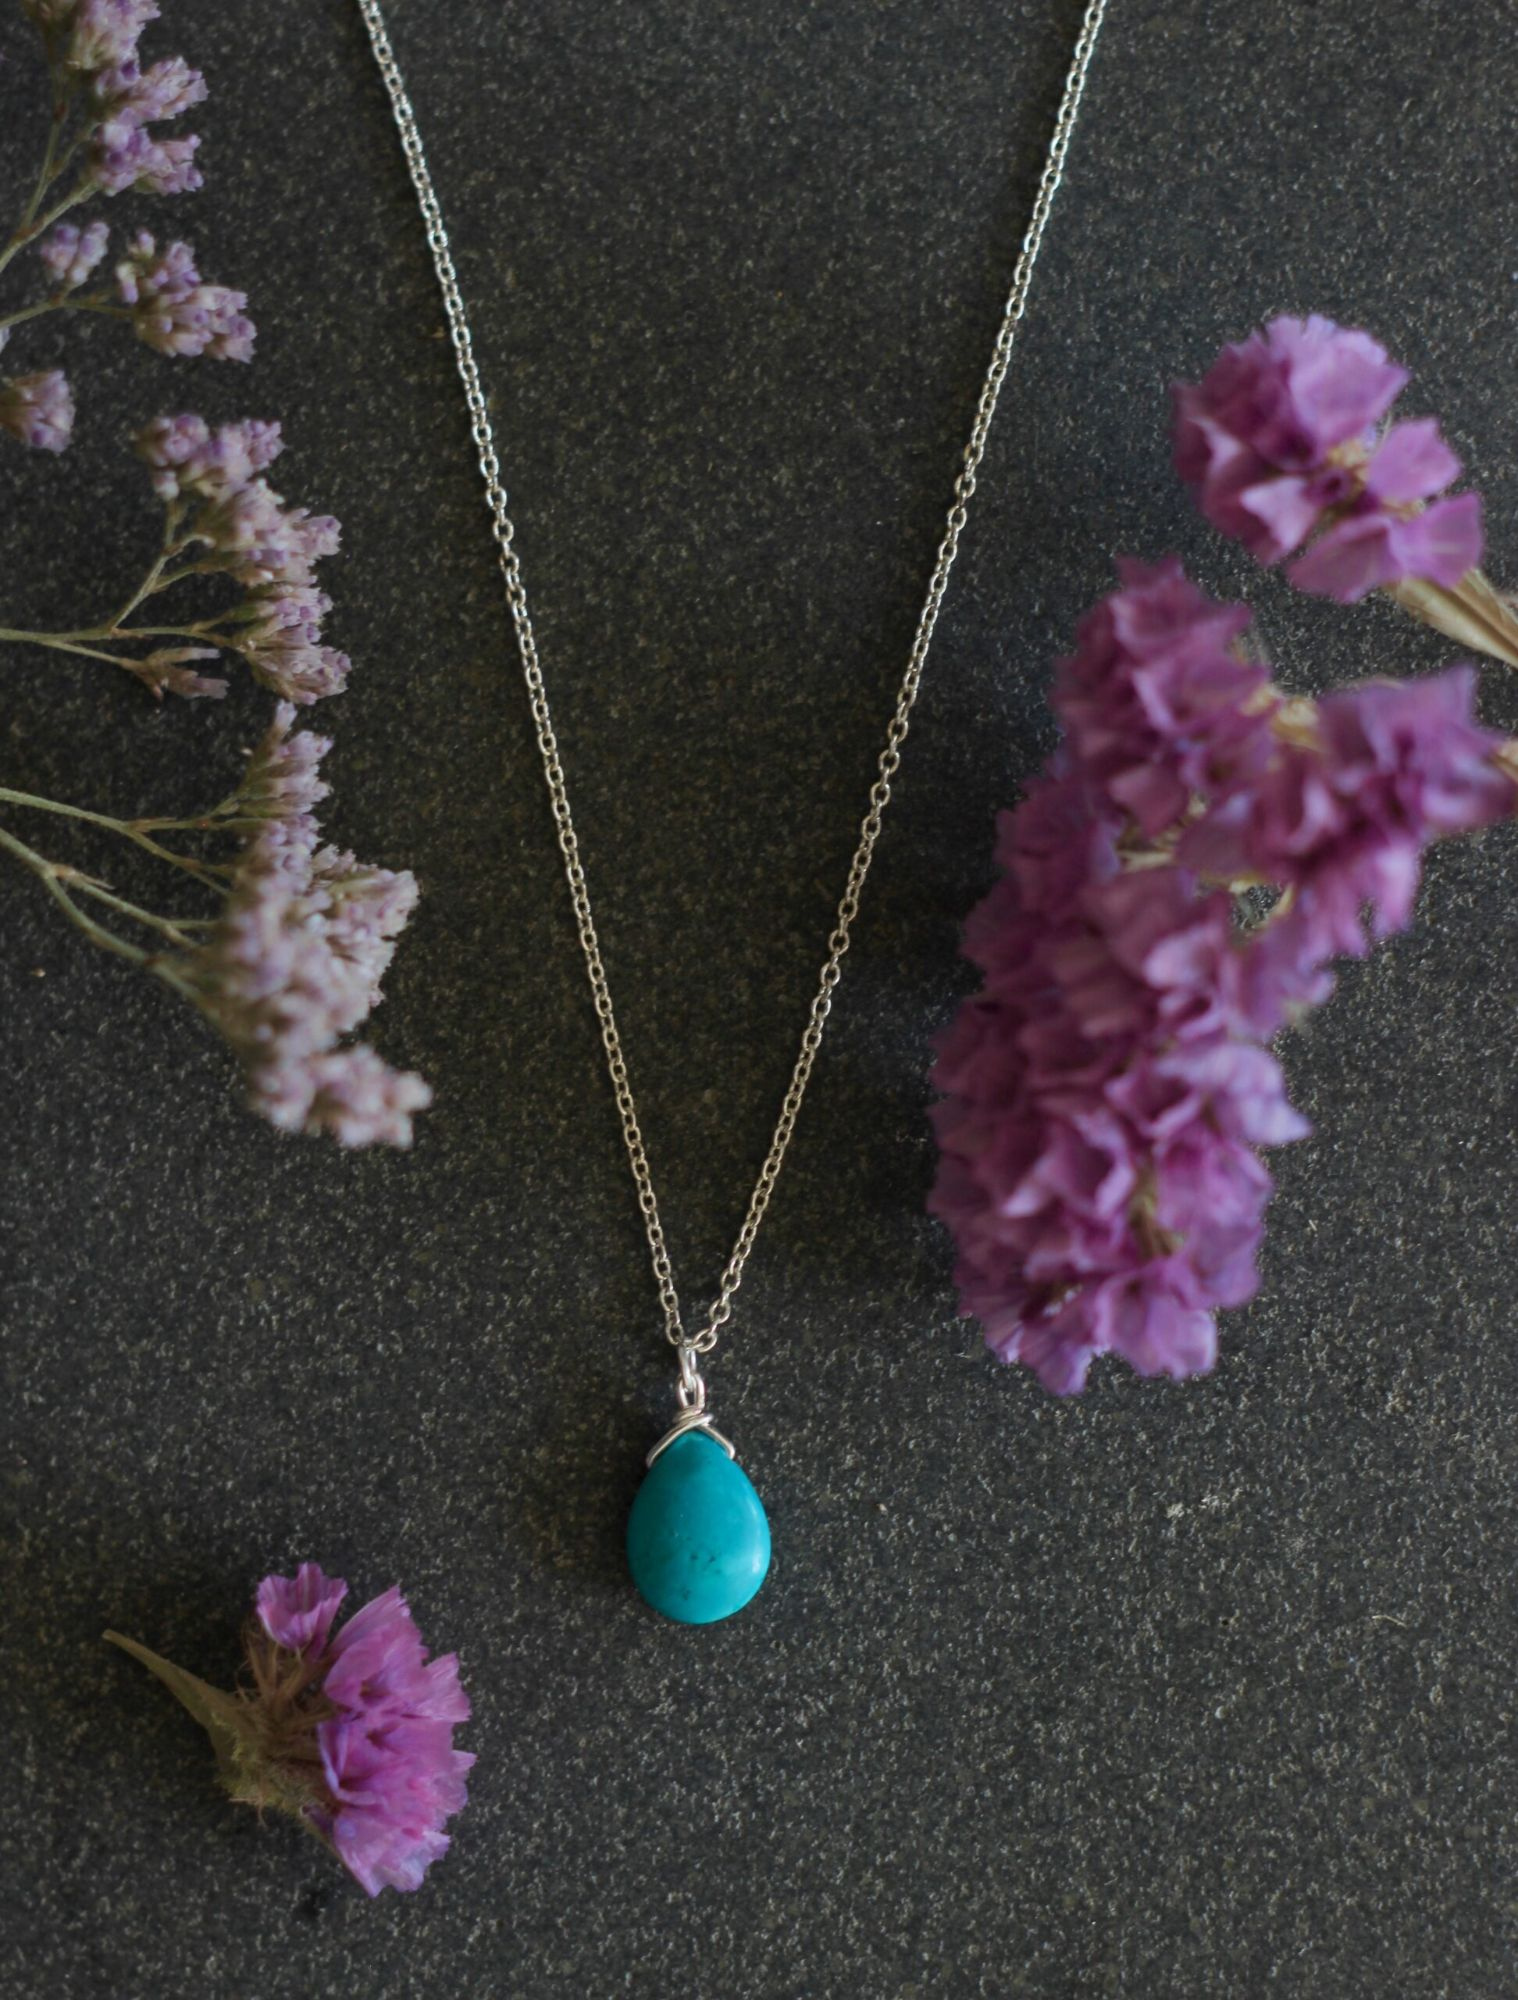 Teal Tear Drop Necklace From AMC Jewellery